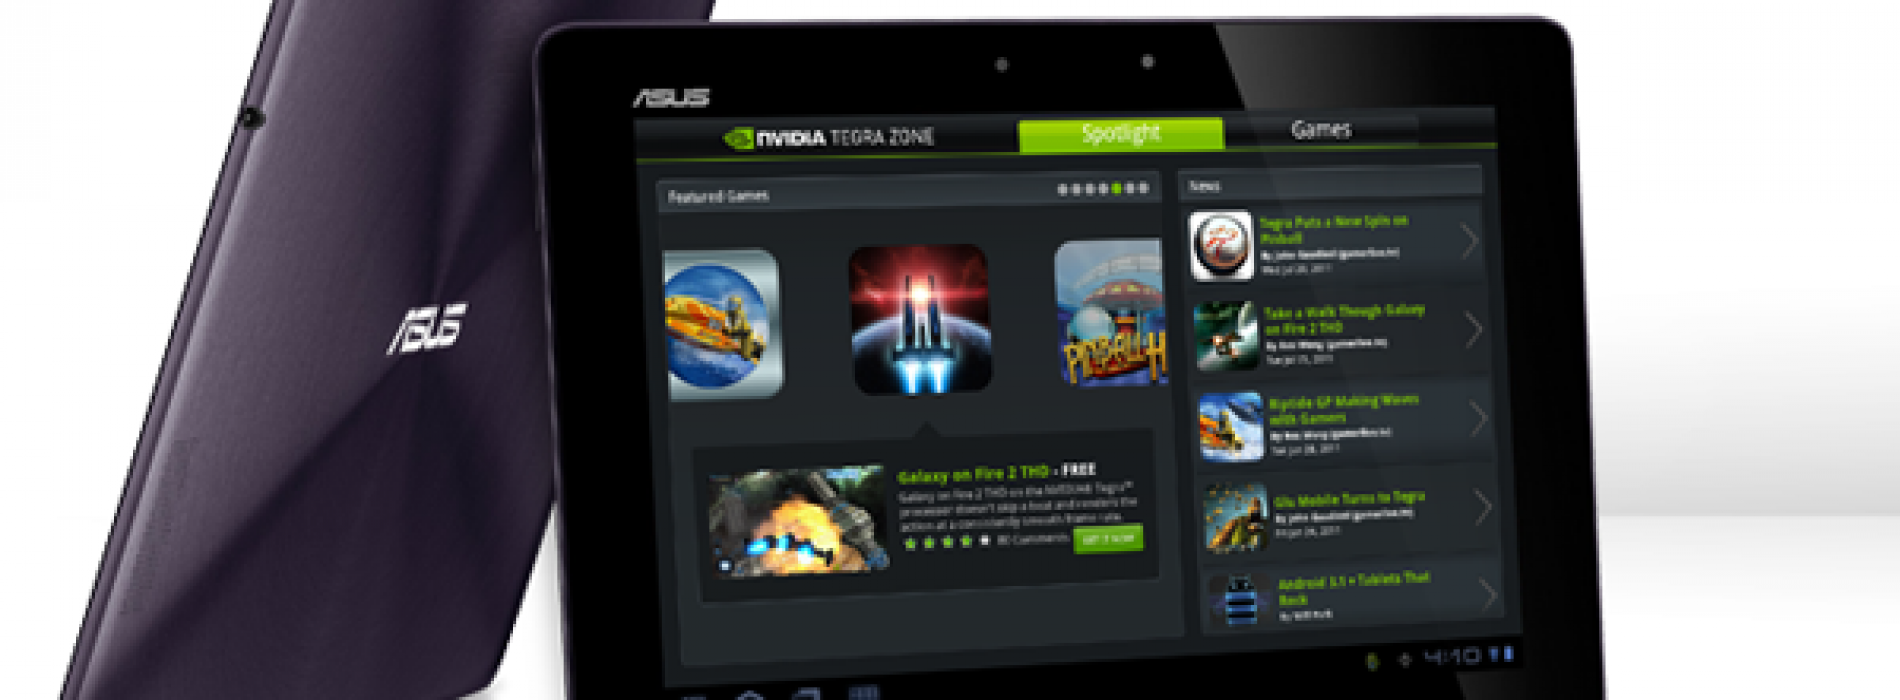 """NVIDIA CEO: Tegra 3 tablets will run $300 in """"couple quarters"""""""